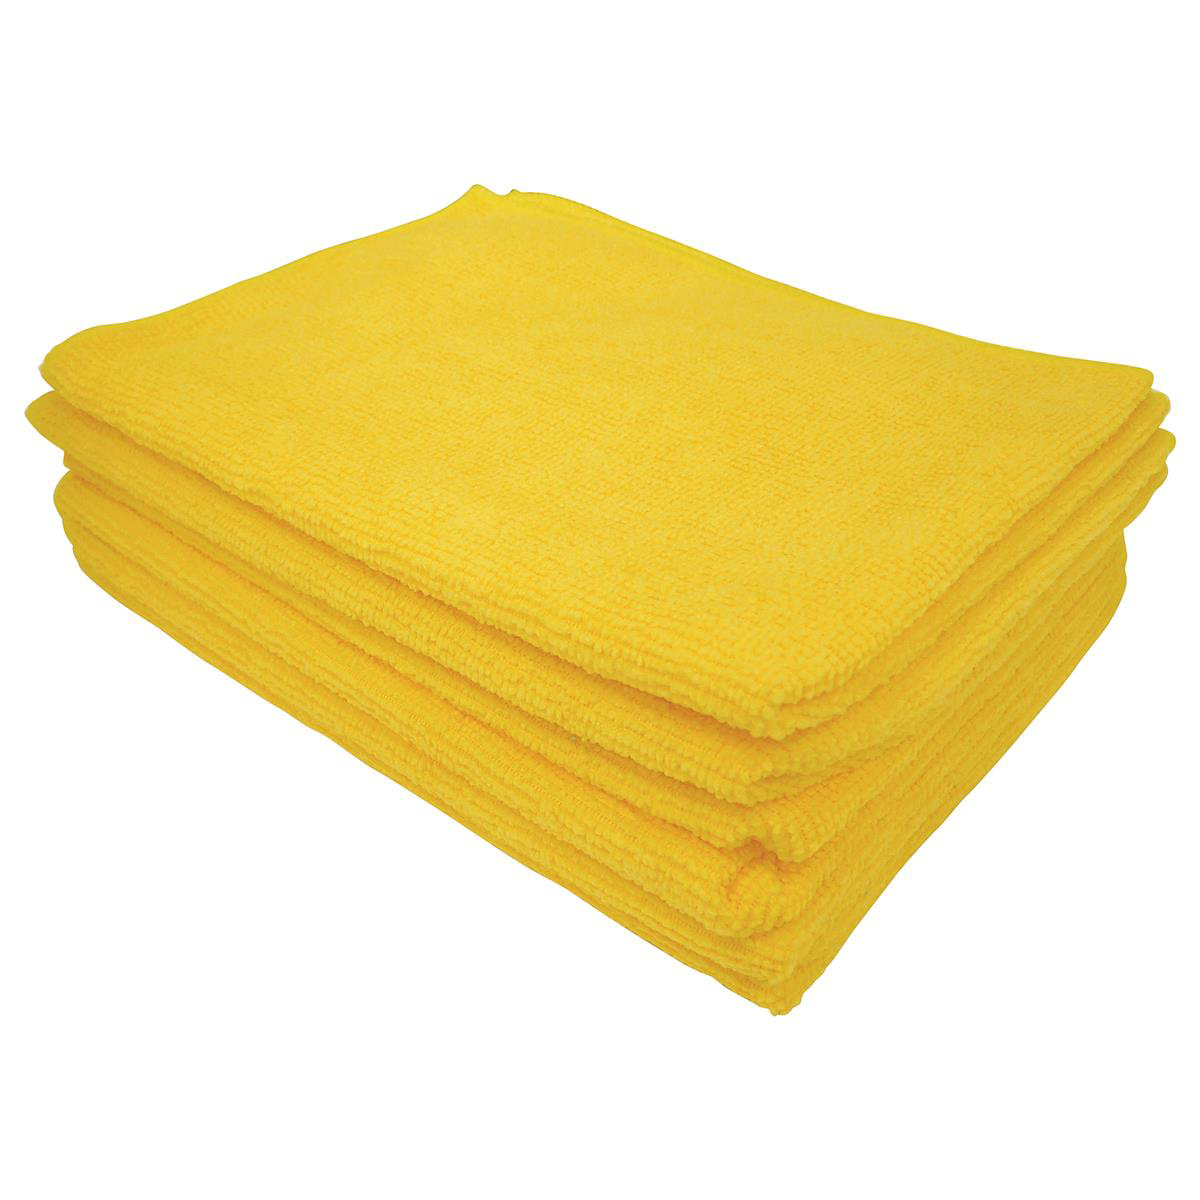 5 Star Facilities Microfibre Cleaning Cloths Colour-coded Dry or Damp Multi-surface Yellow Pack 6